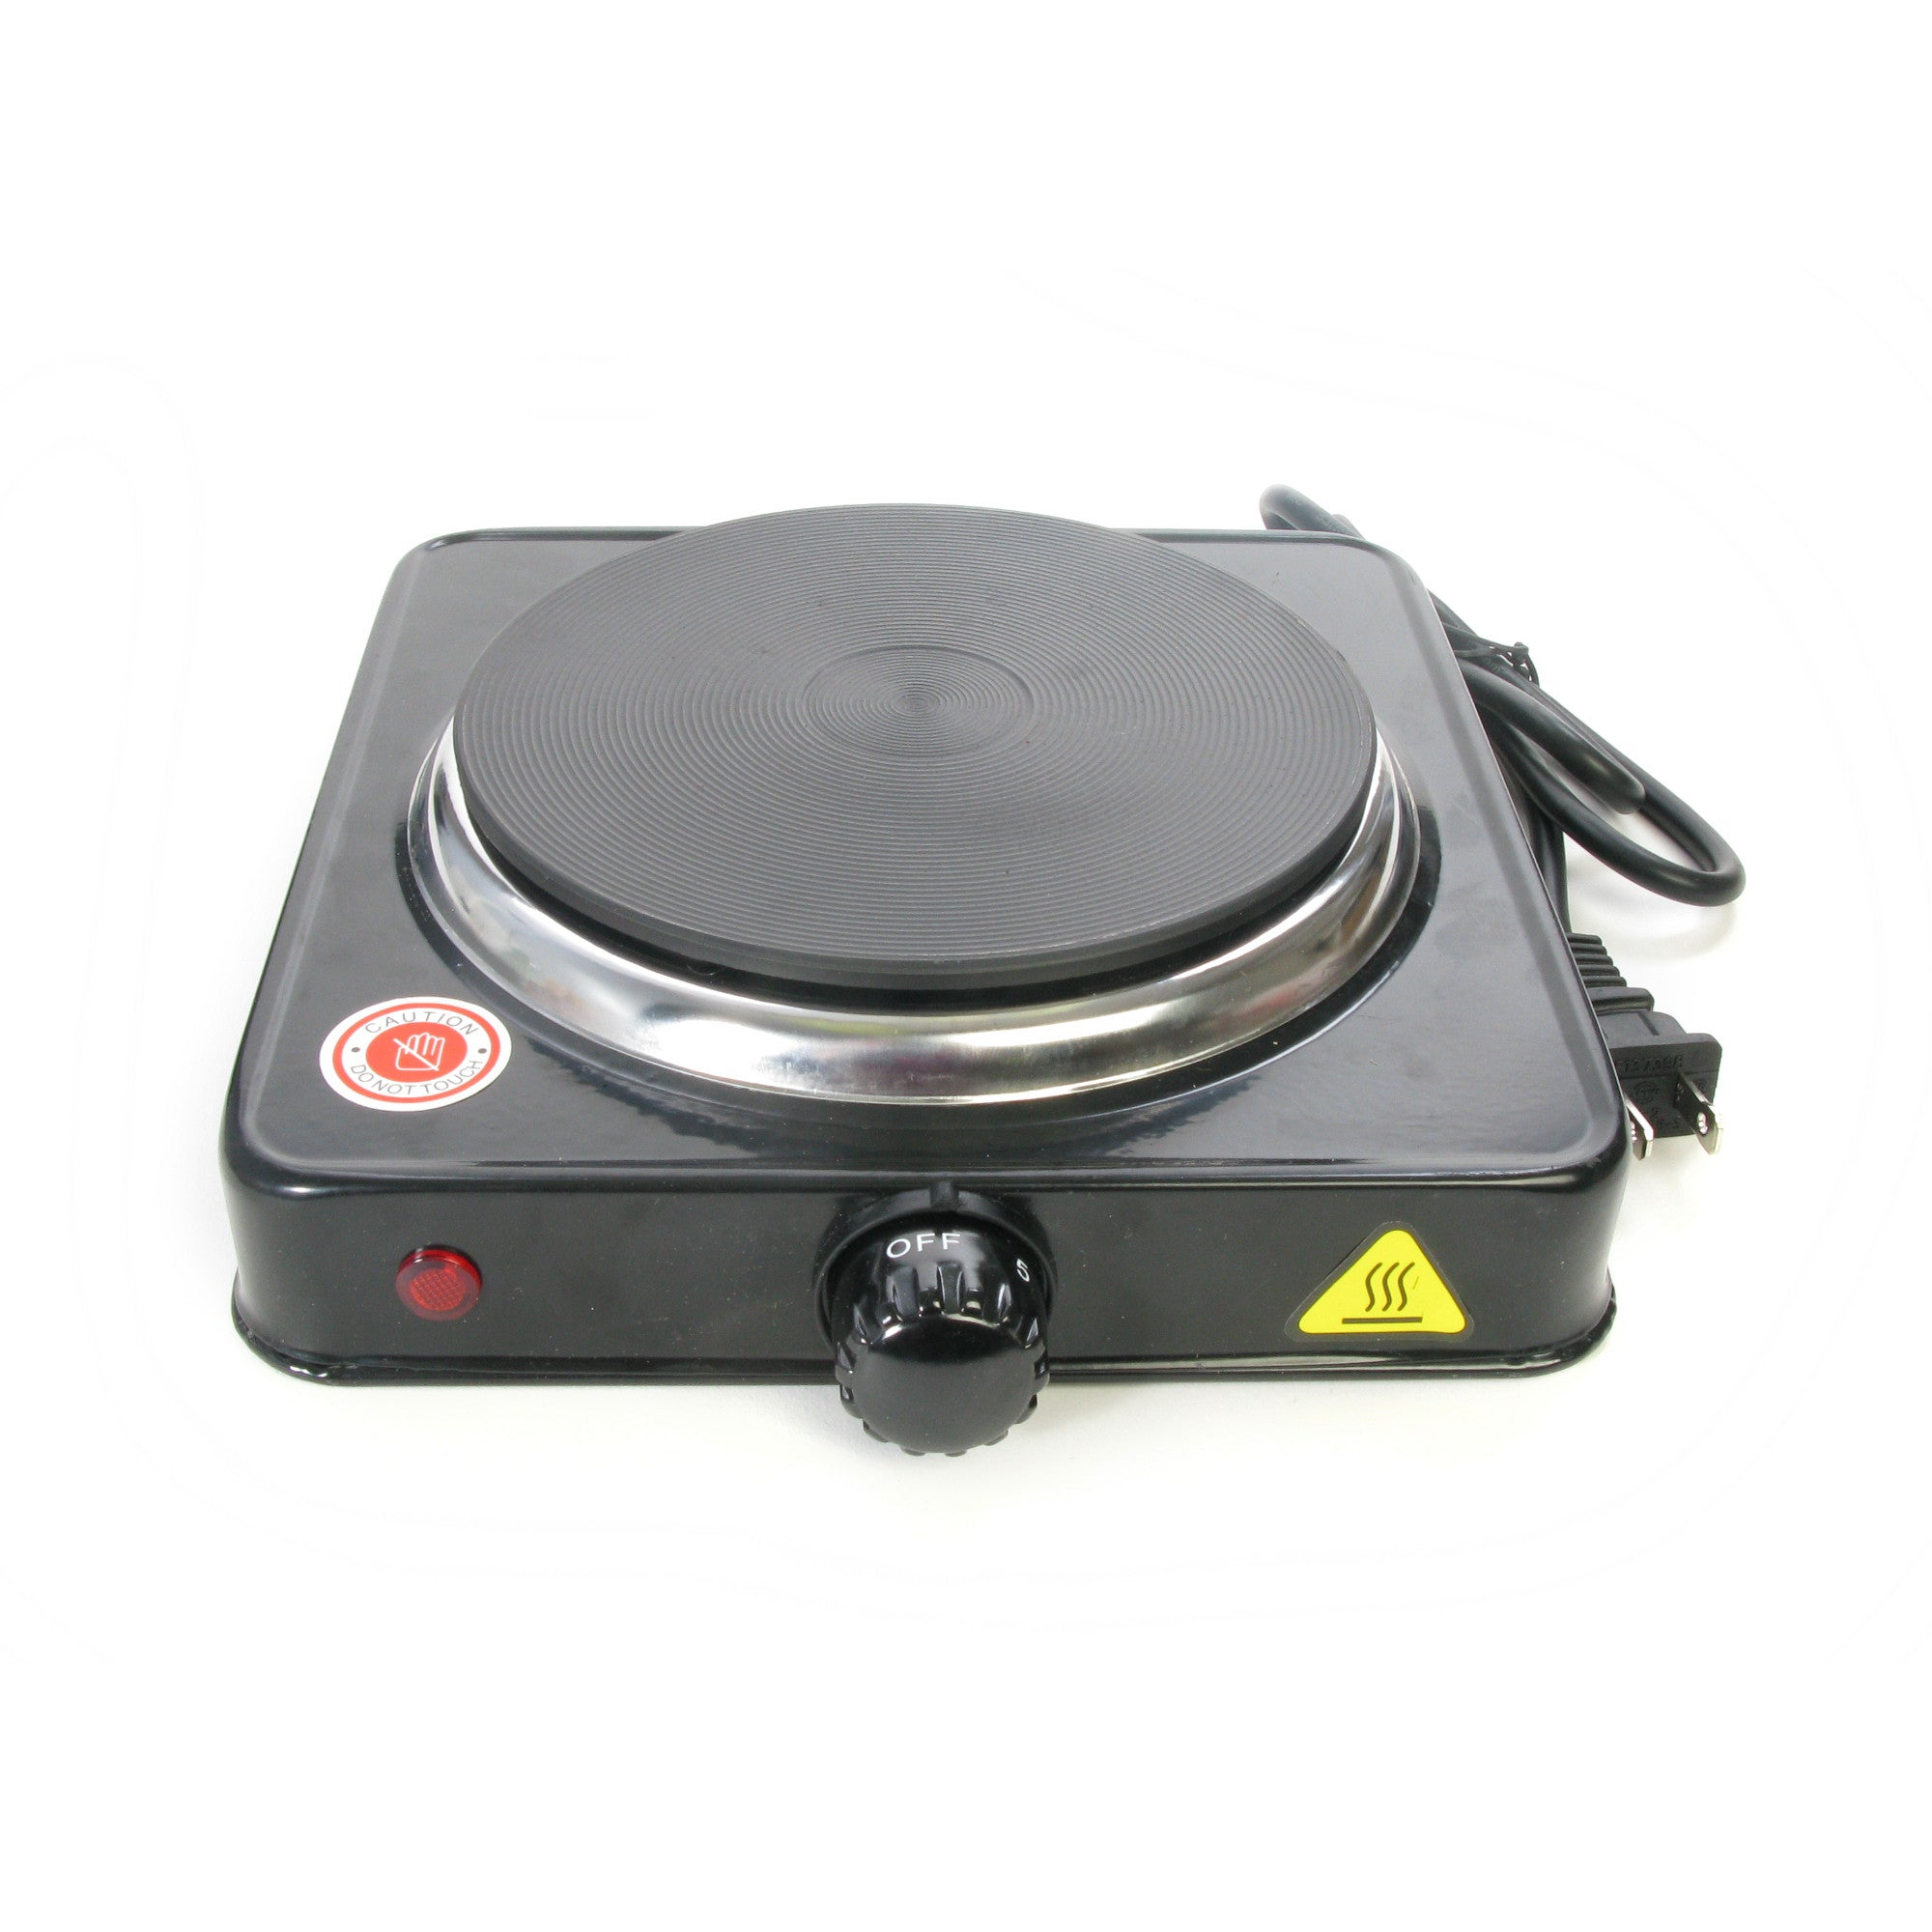 Hot Plate 154mm, 1000W - The Science Shop - 1